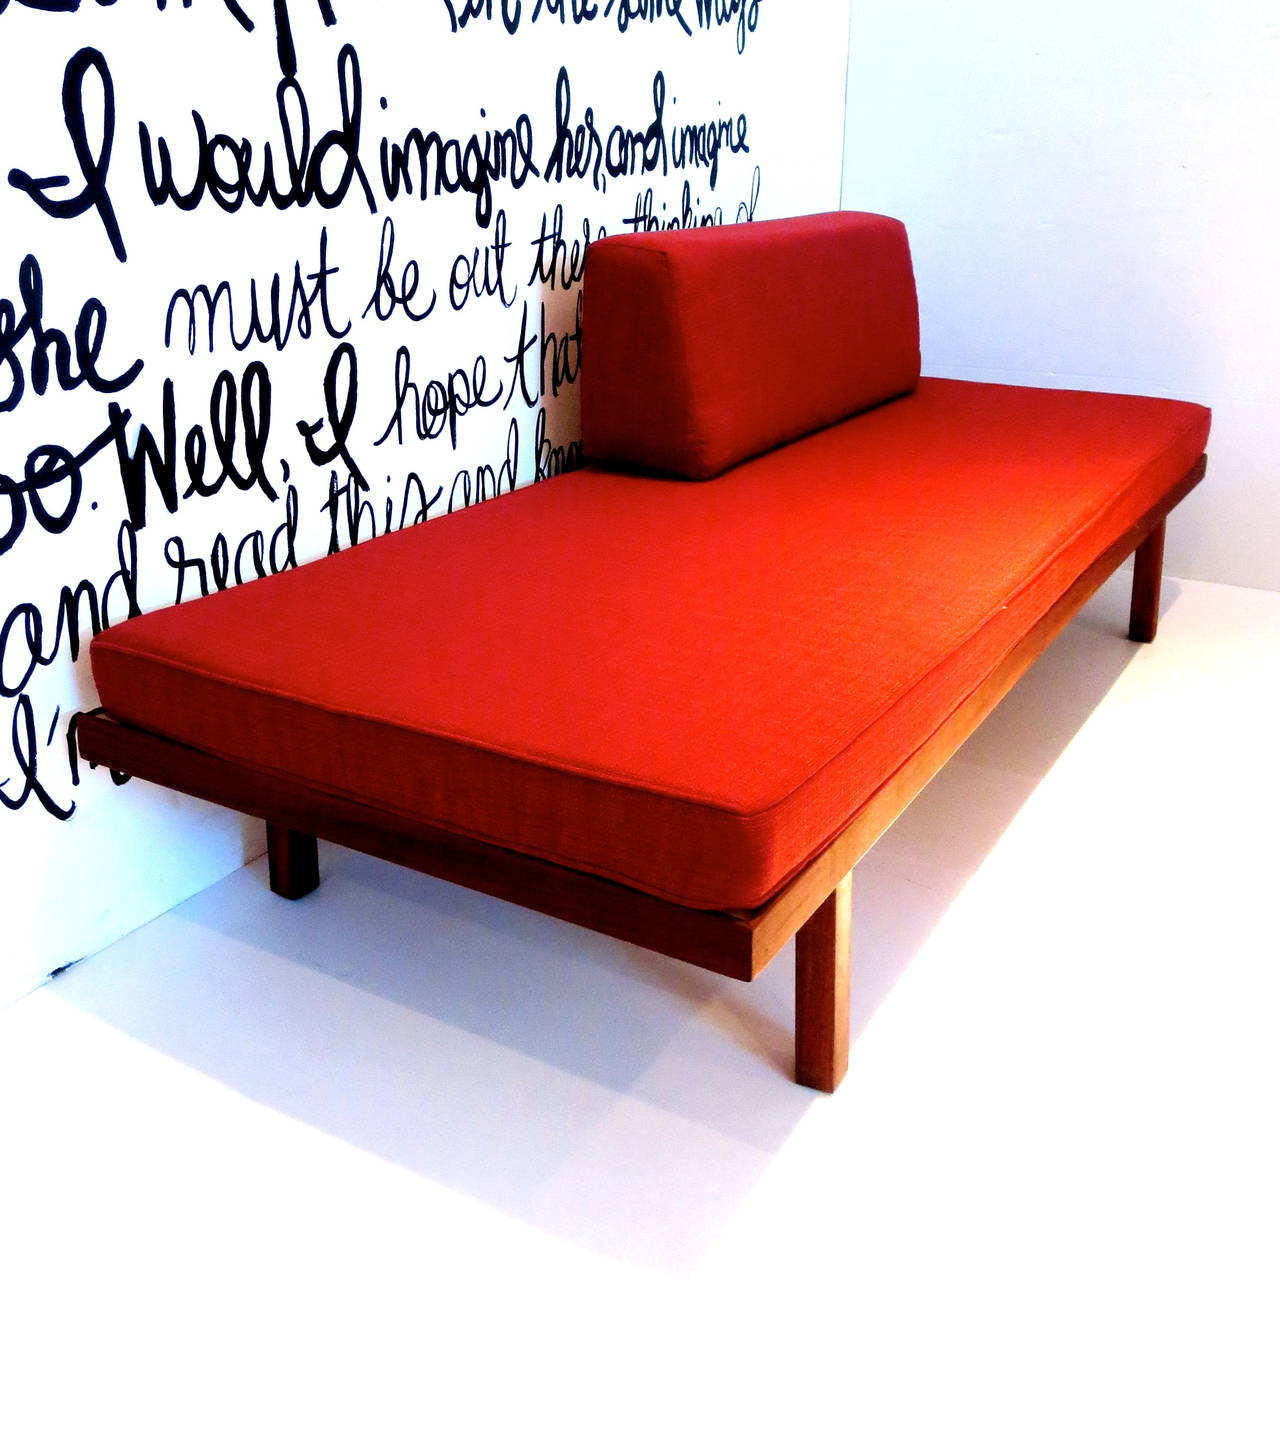 1950s American Modern Mid Century Sofa Daybed In Solid